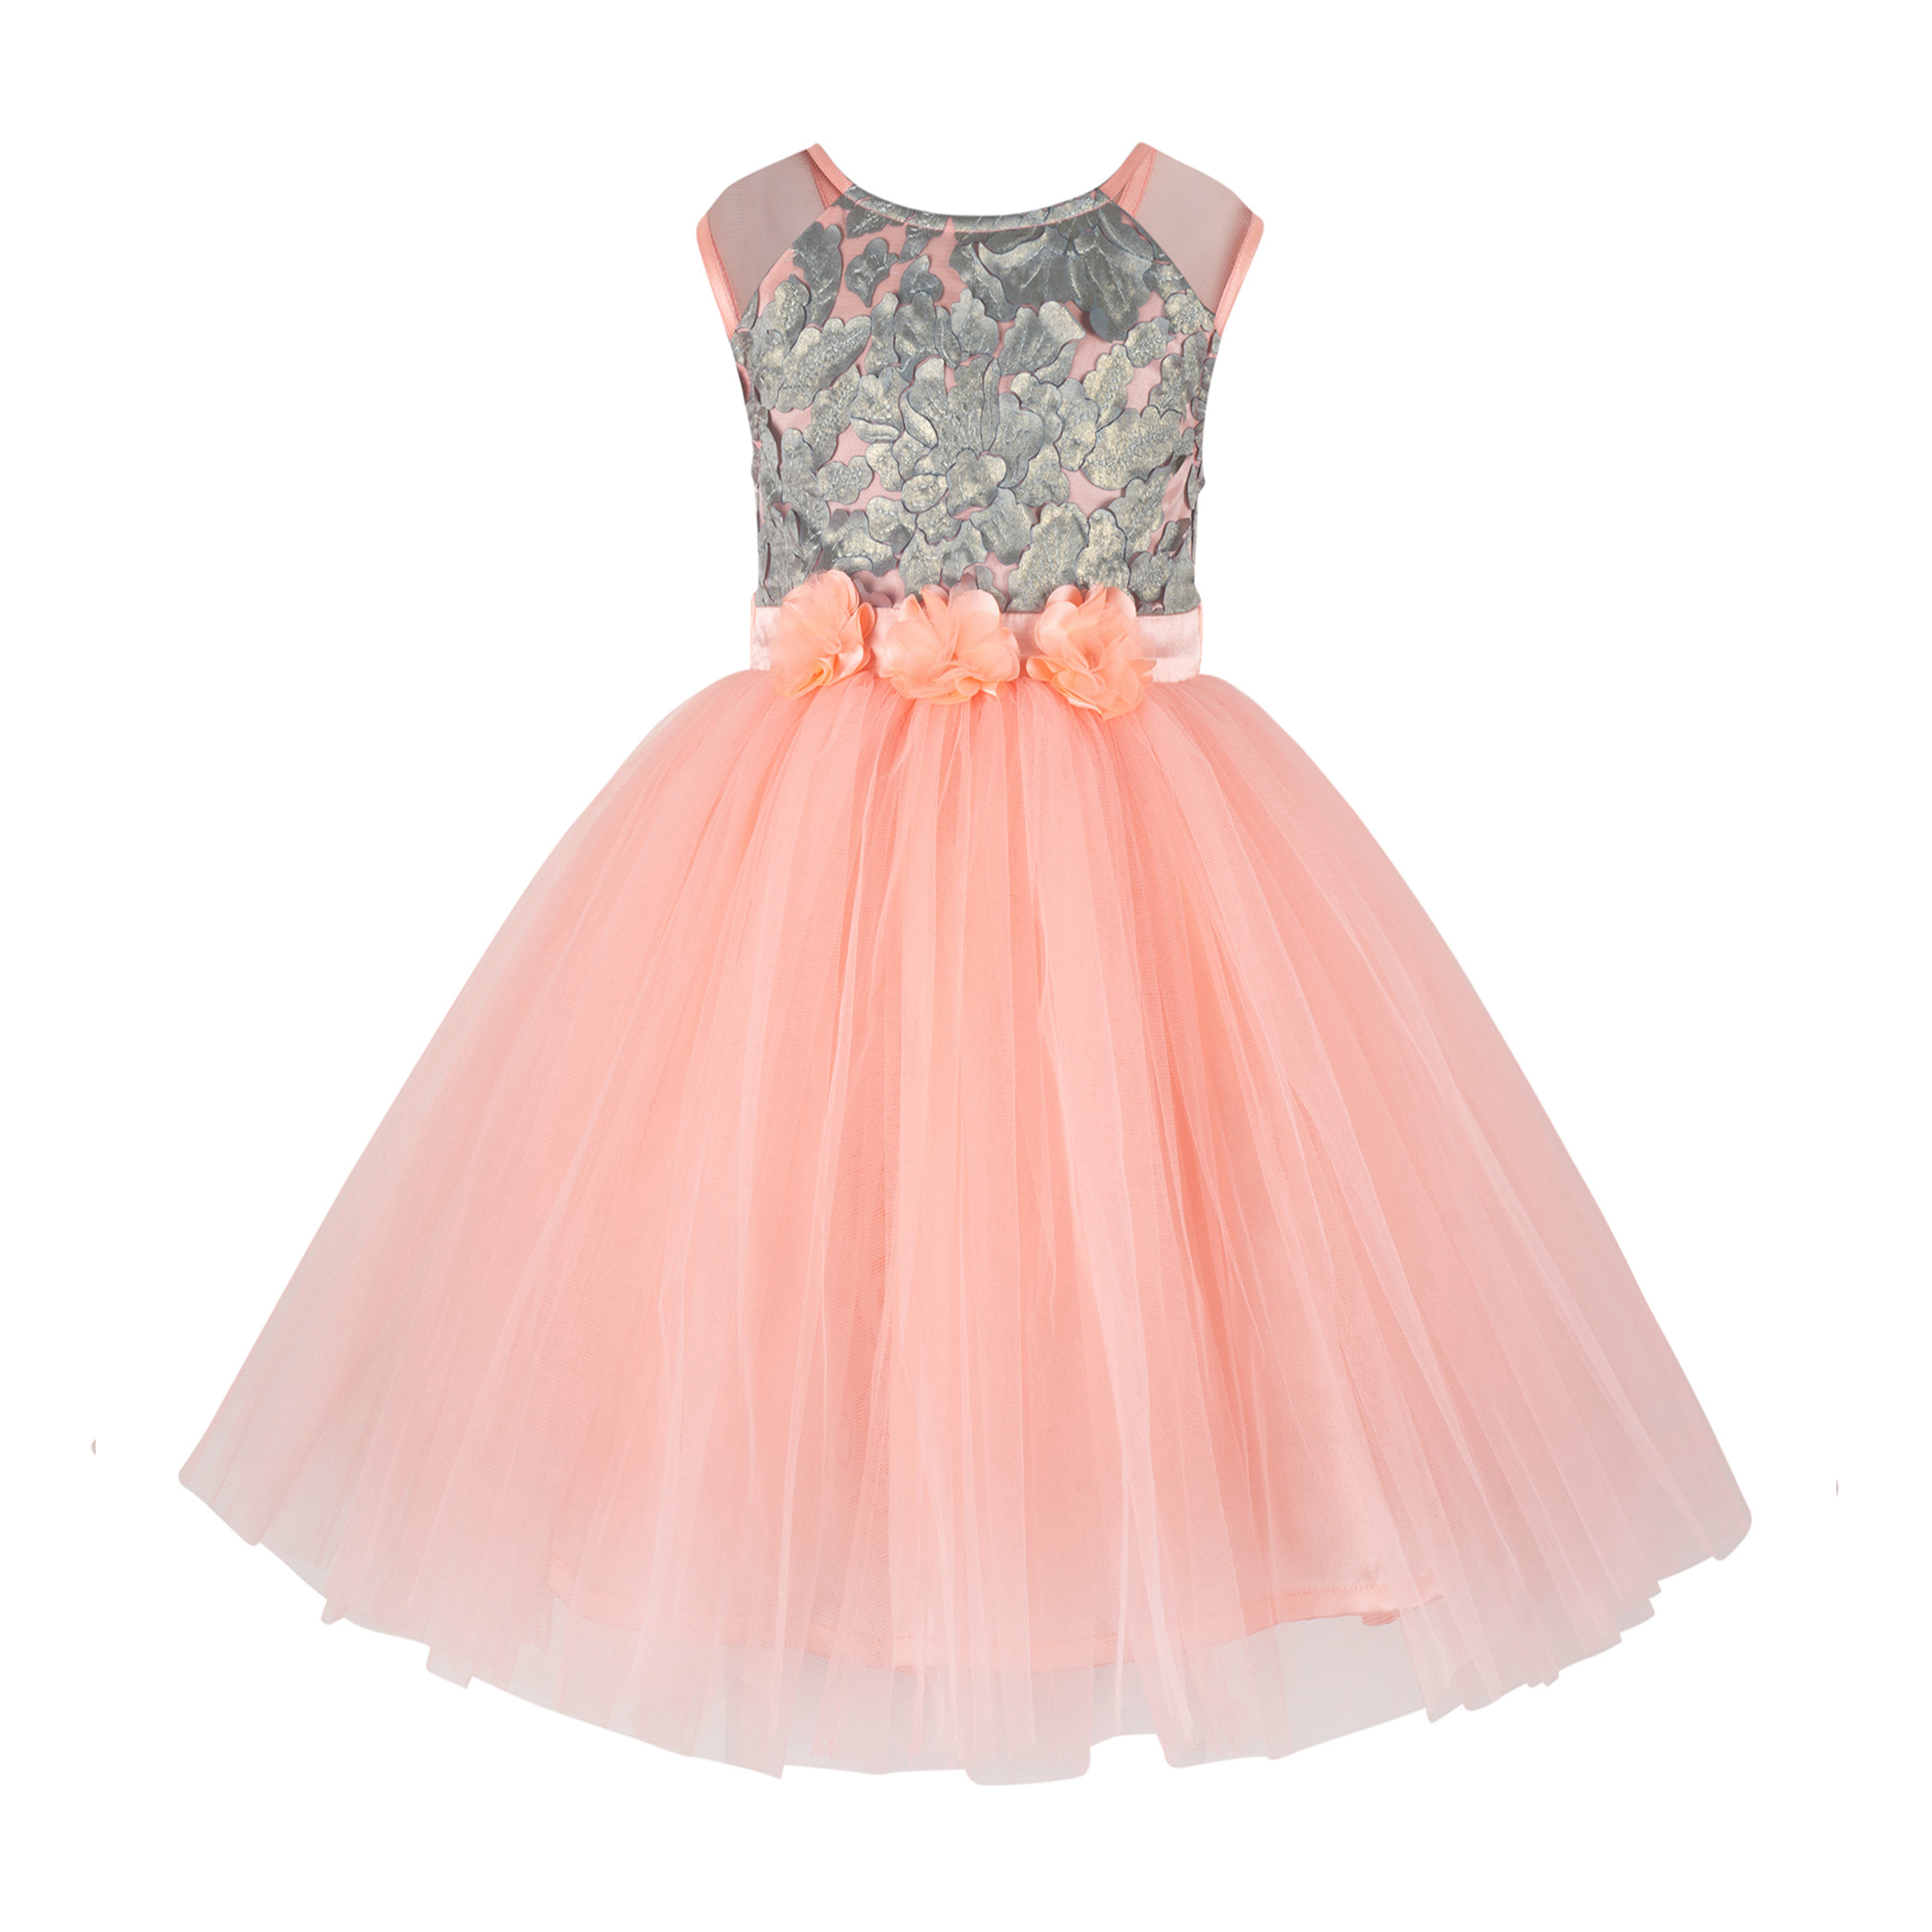 Sequins Embellished Peach Knee Frock.